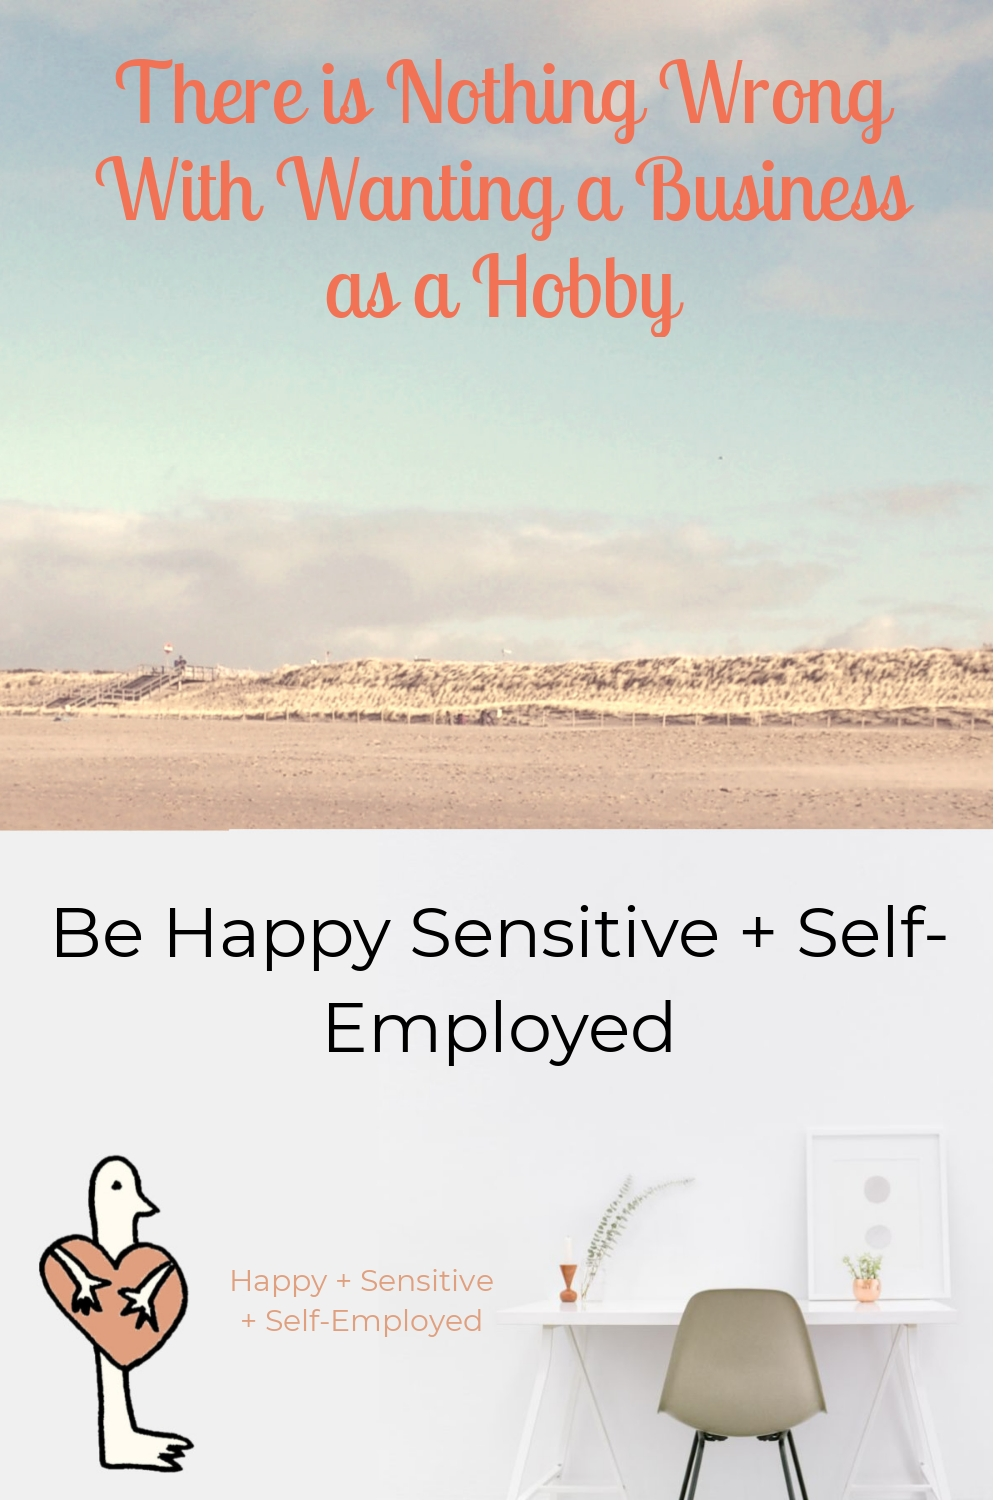 There is Nothing Wrong With Wanting a Business as a Hobby